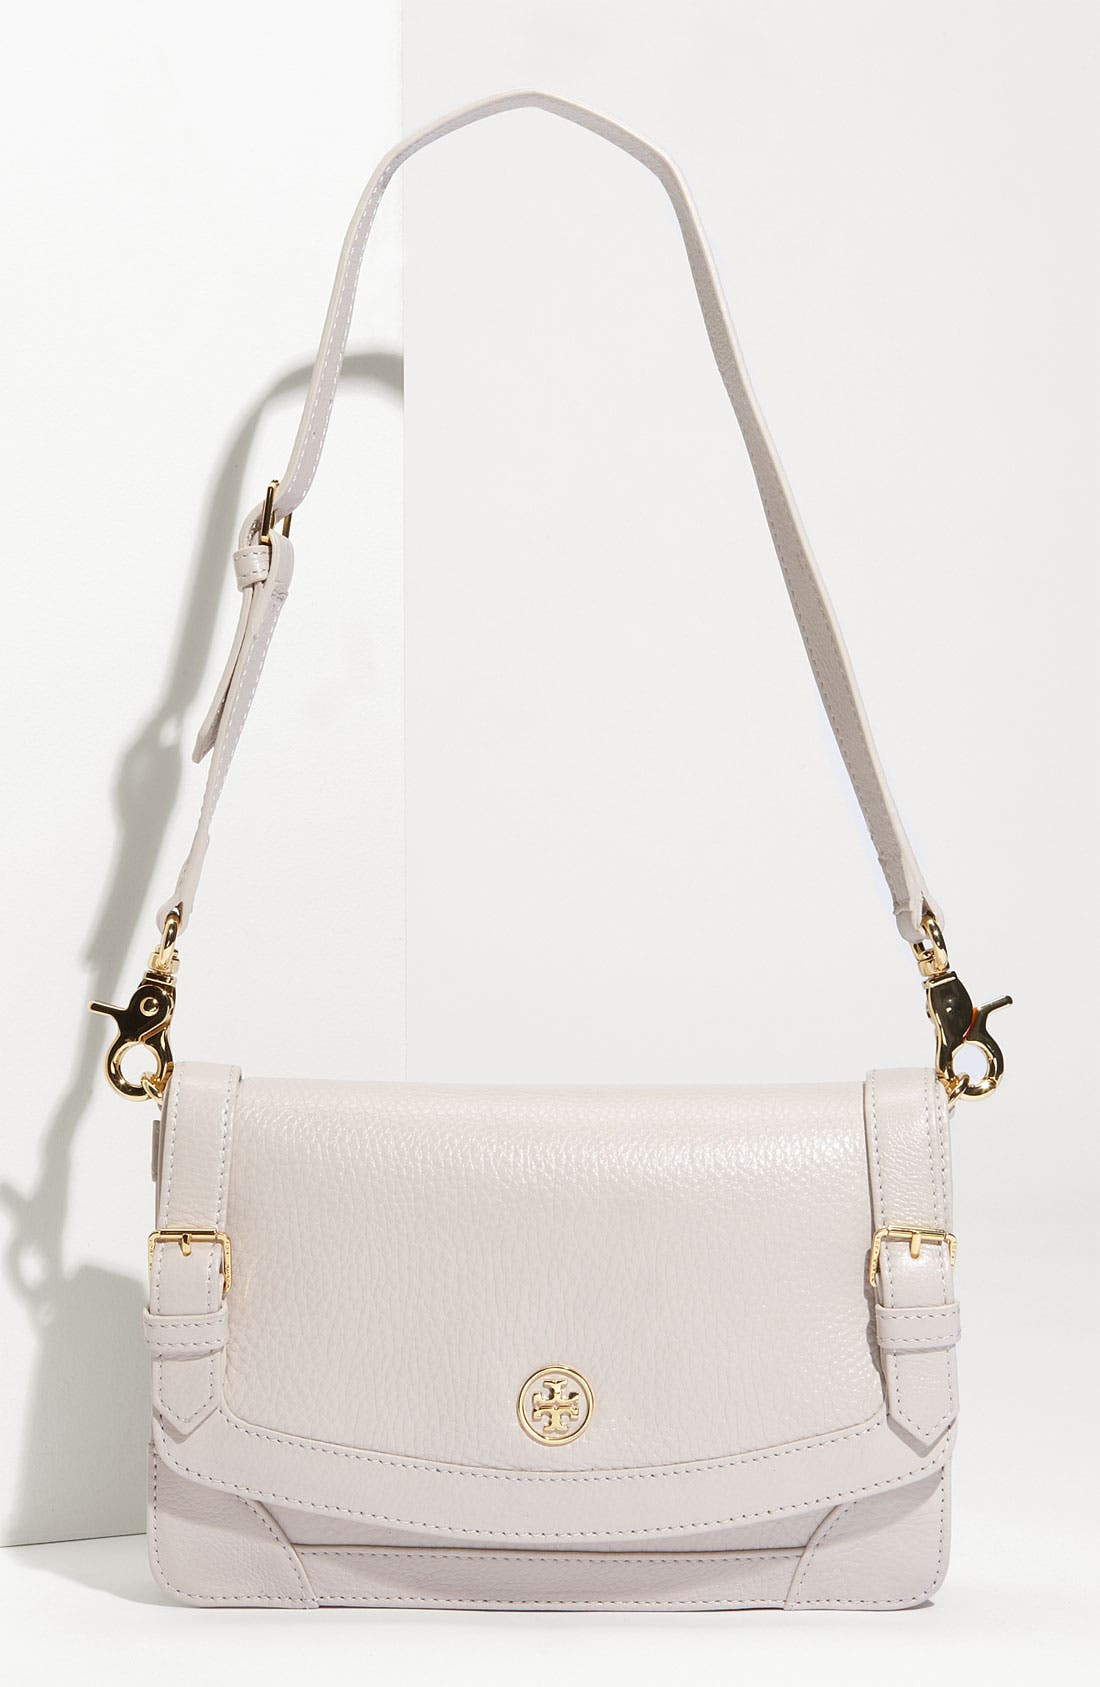 Alternate Image 1 Selected - Tory Burch 'Glossy Ally - Small' Shoulder Bag